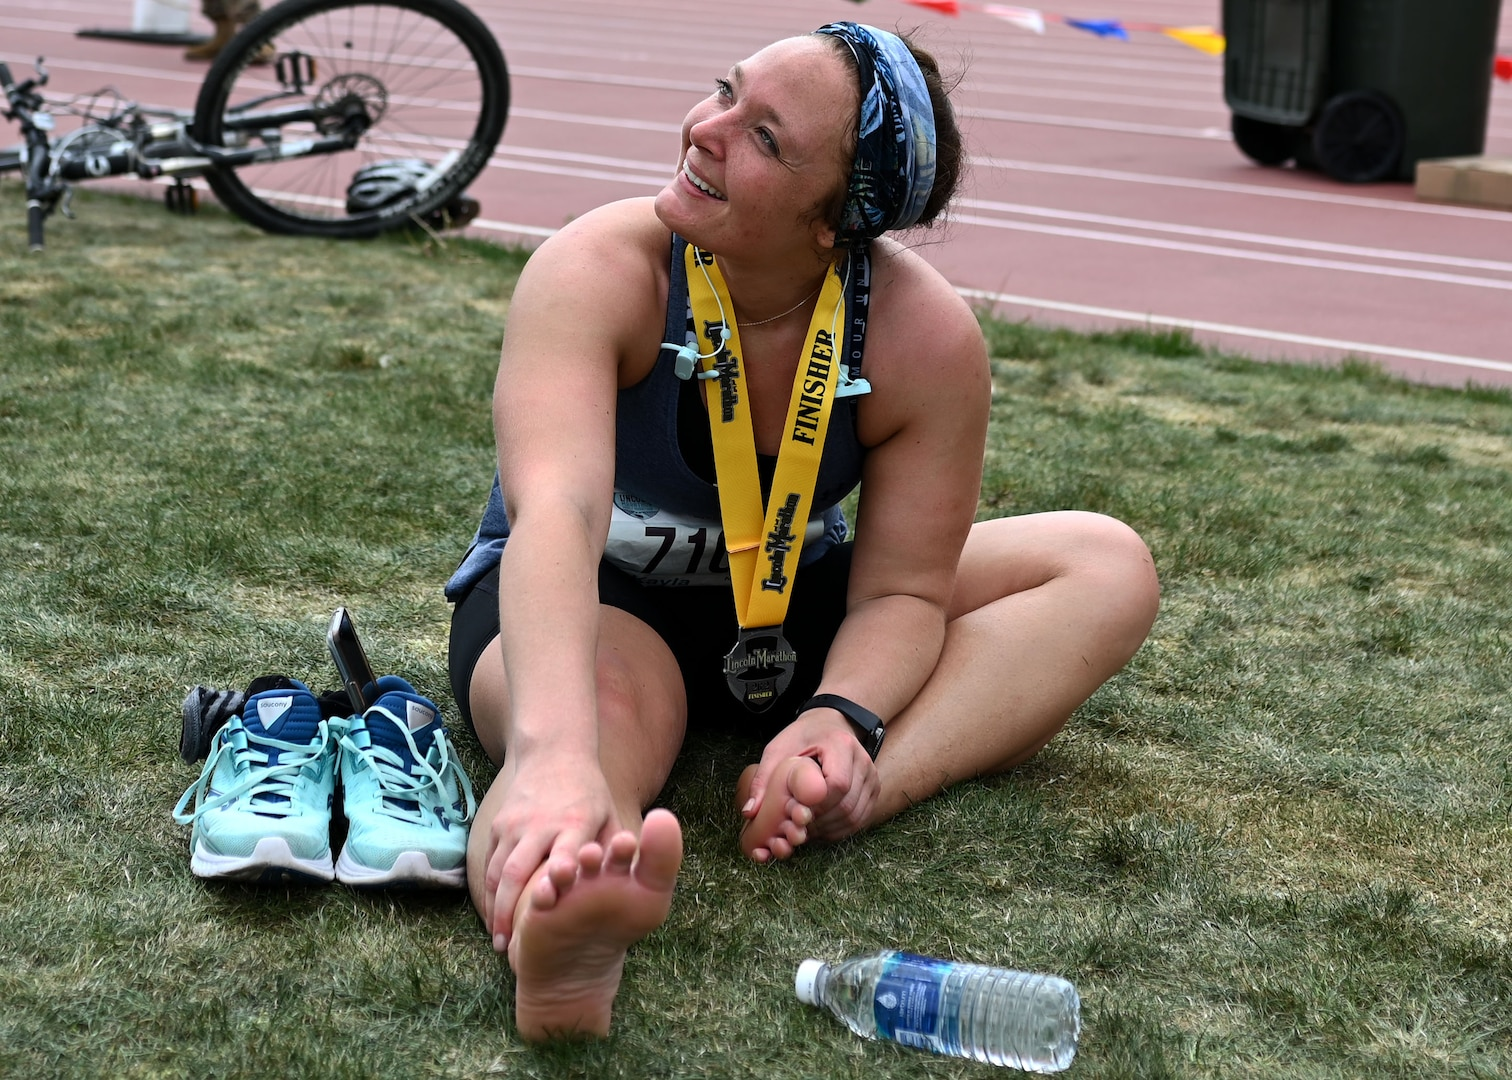 Cpl Kayla Denison of A Battery, 3rd Battalion, 197th Field Artillery Brigade, stretches out at University of Nebraska's Ed Weir Stadium following her May 2 Lincoln Marathon finish in Lincoln, Neb.